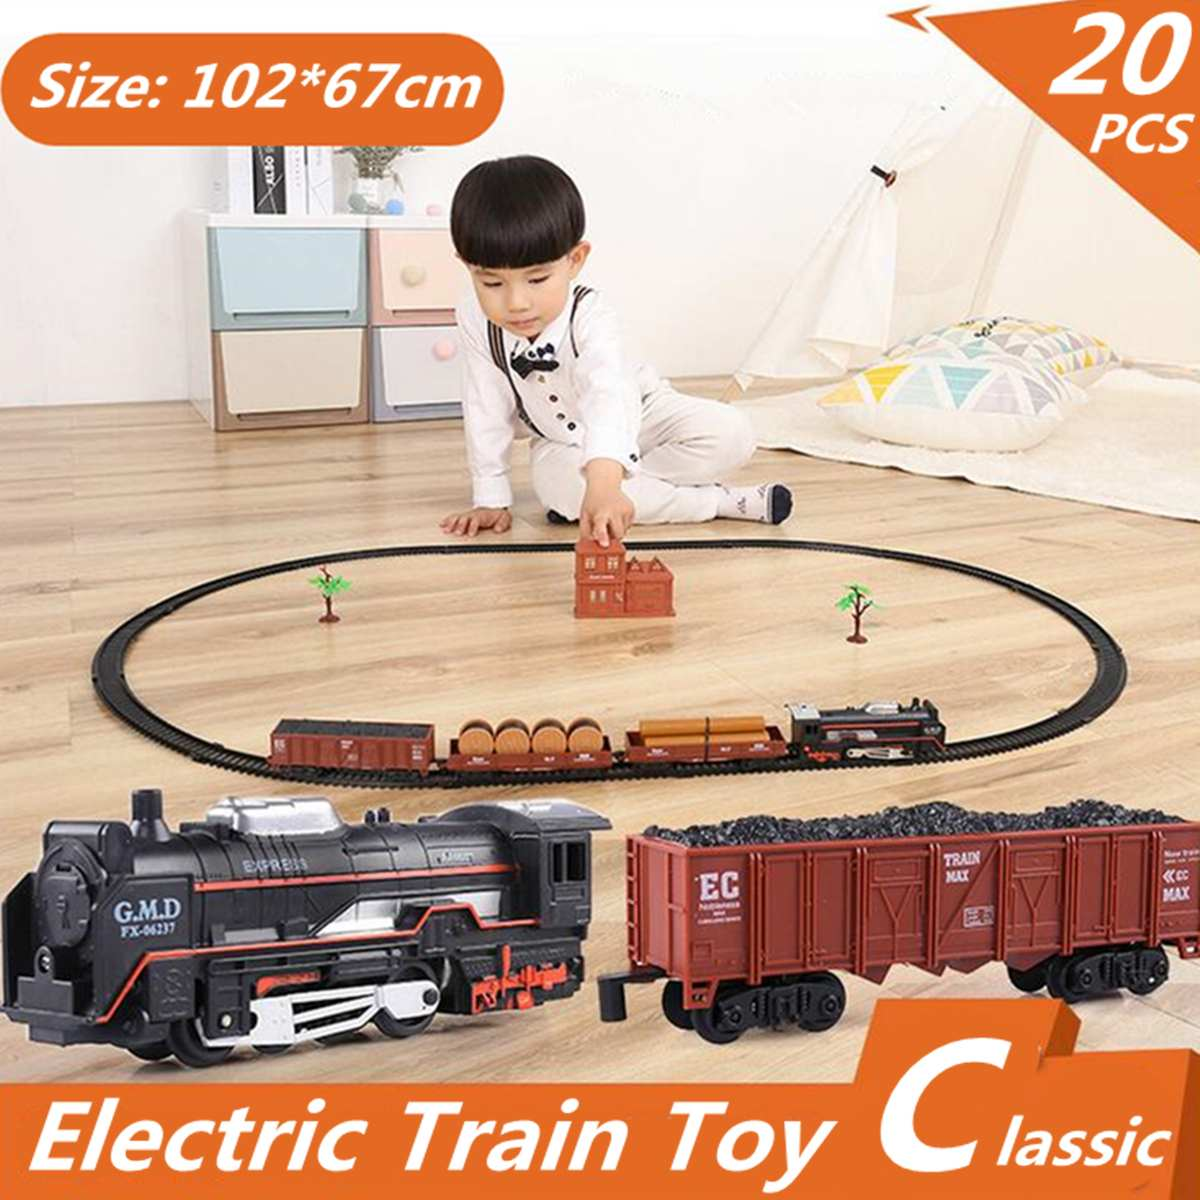 Model Toy Baby Electric Racing Rail Car Kids Track Train Railway Train Racing Road Transportation Building Slot Sets Toys Kids